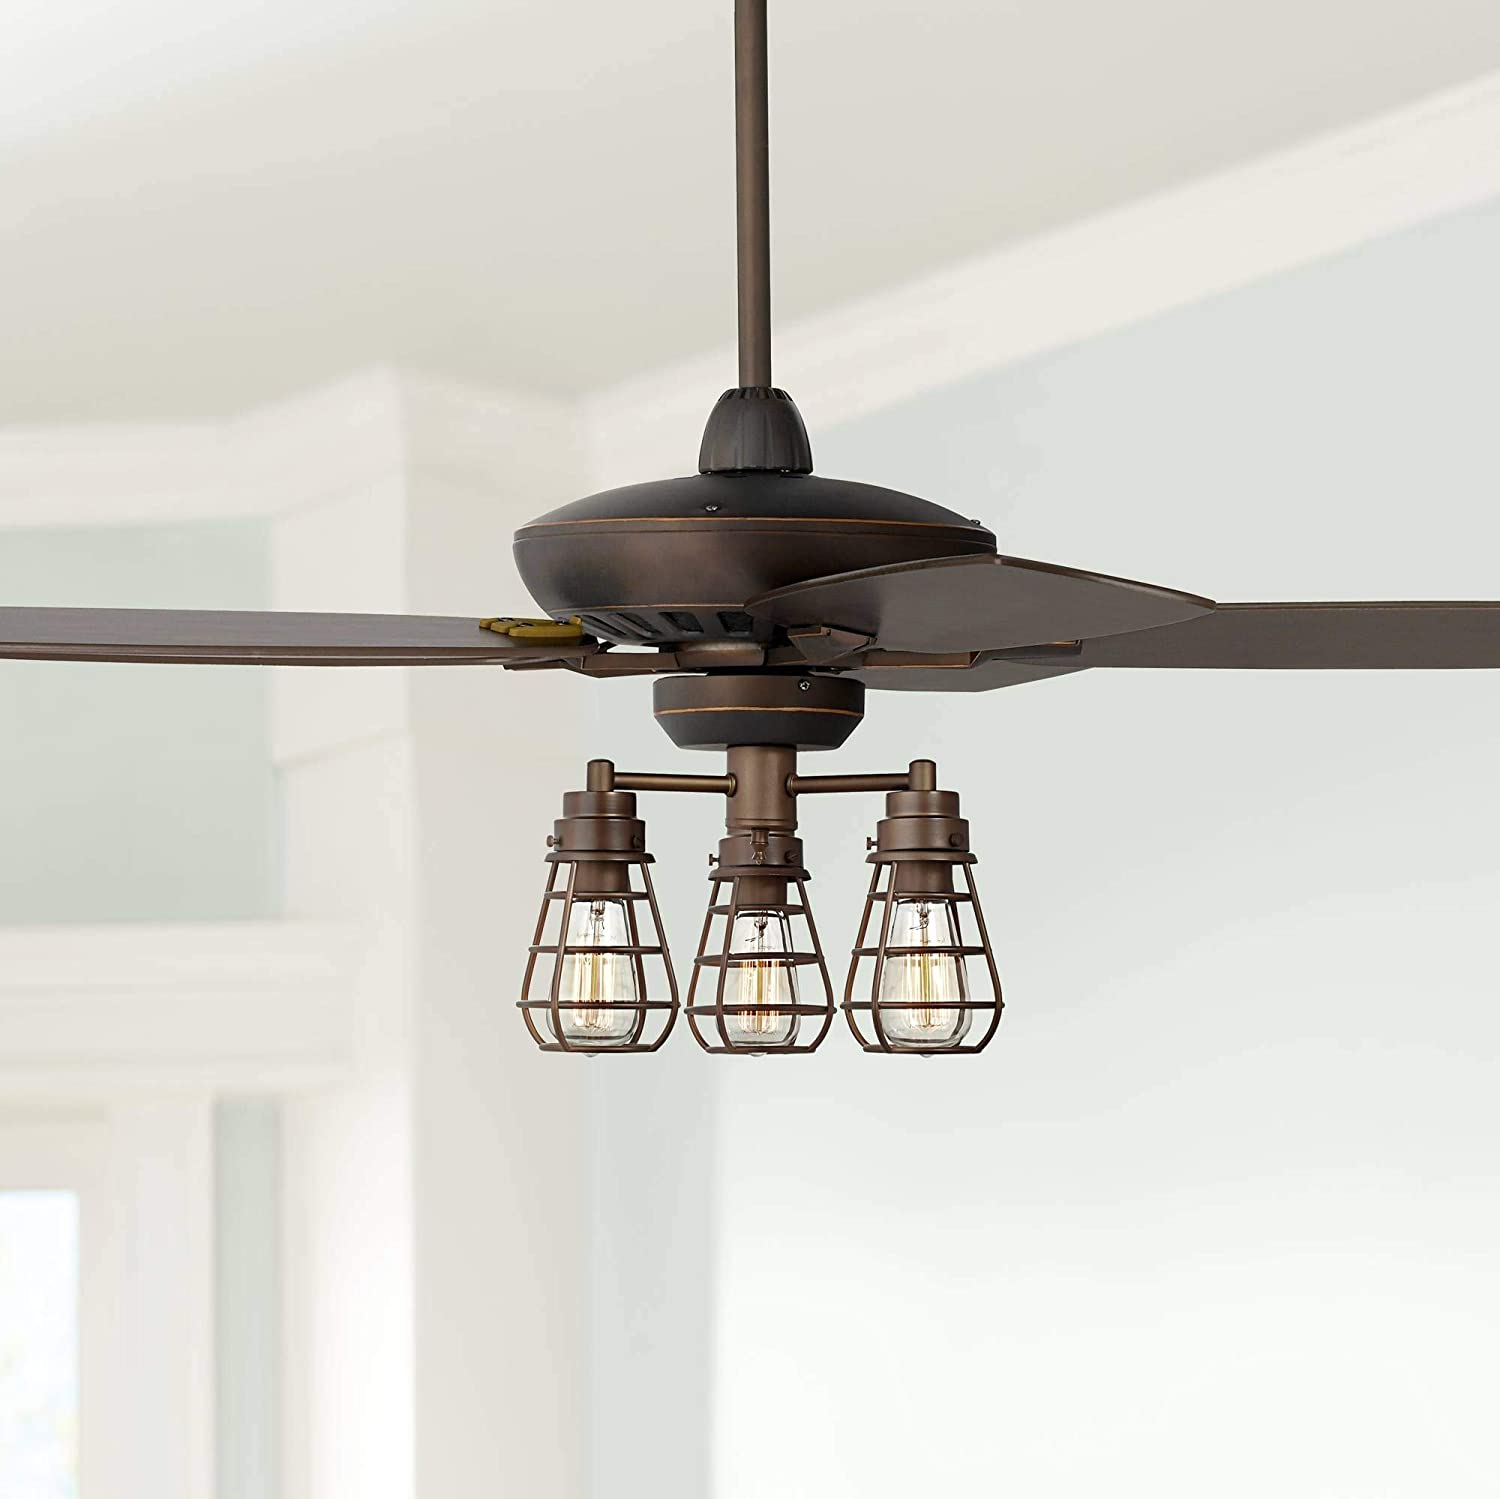 Industrial Ceiling Canopy Kit for Light Fixtures New